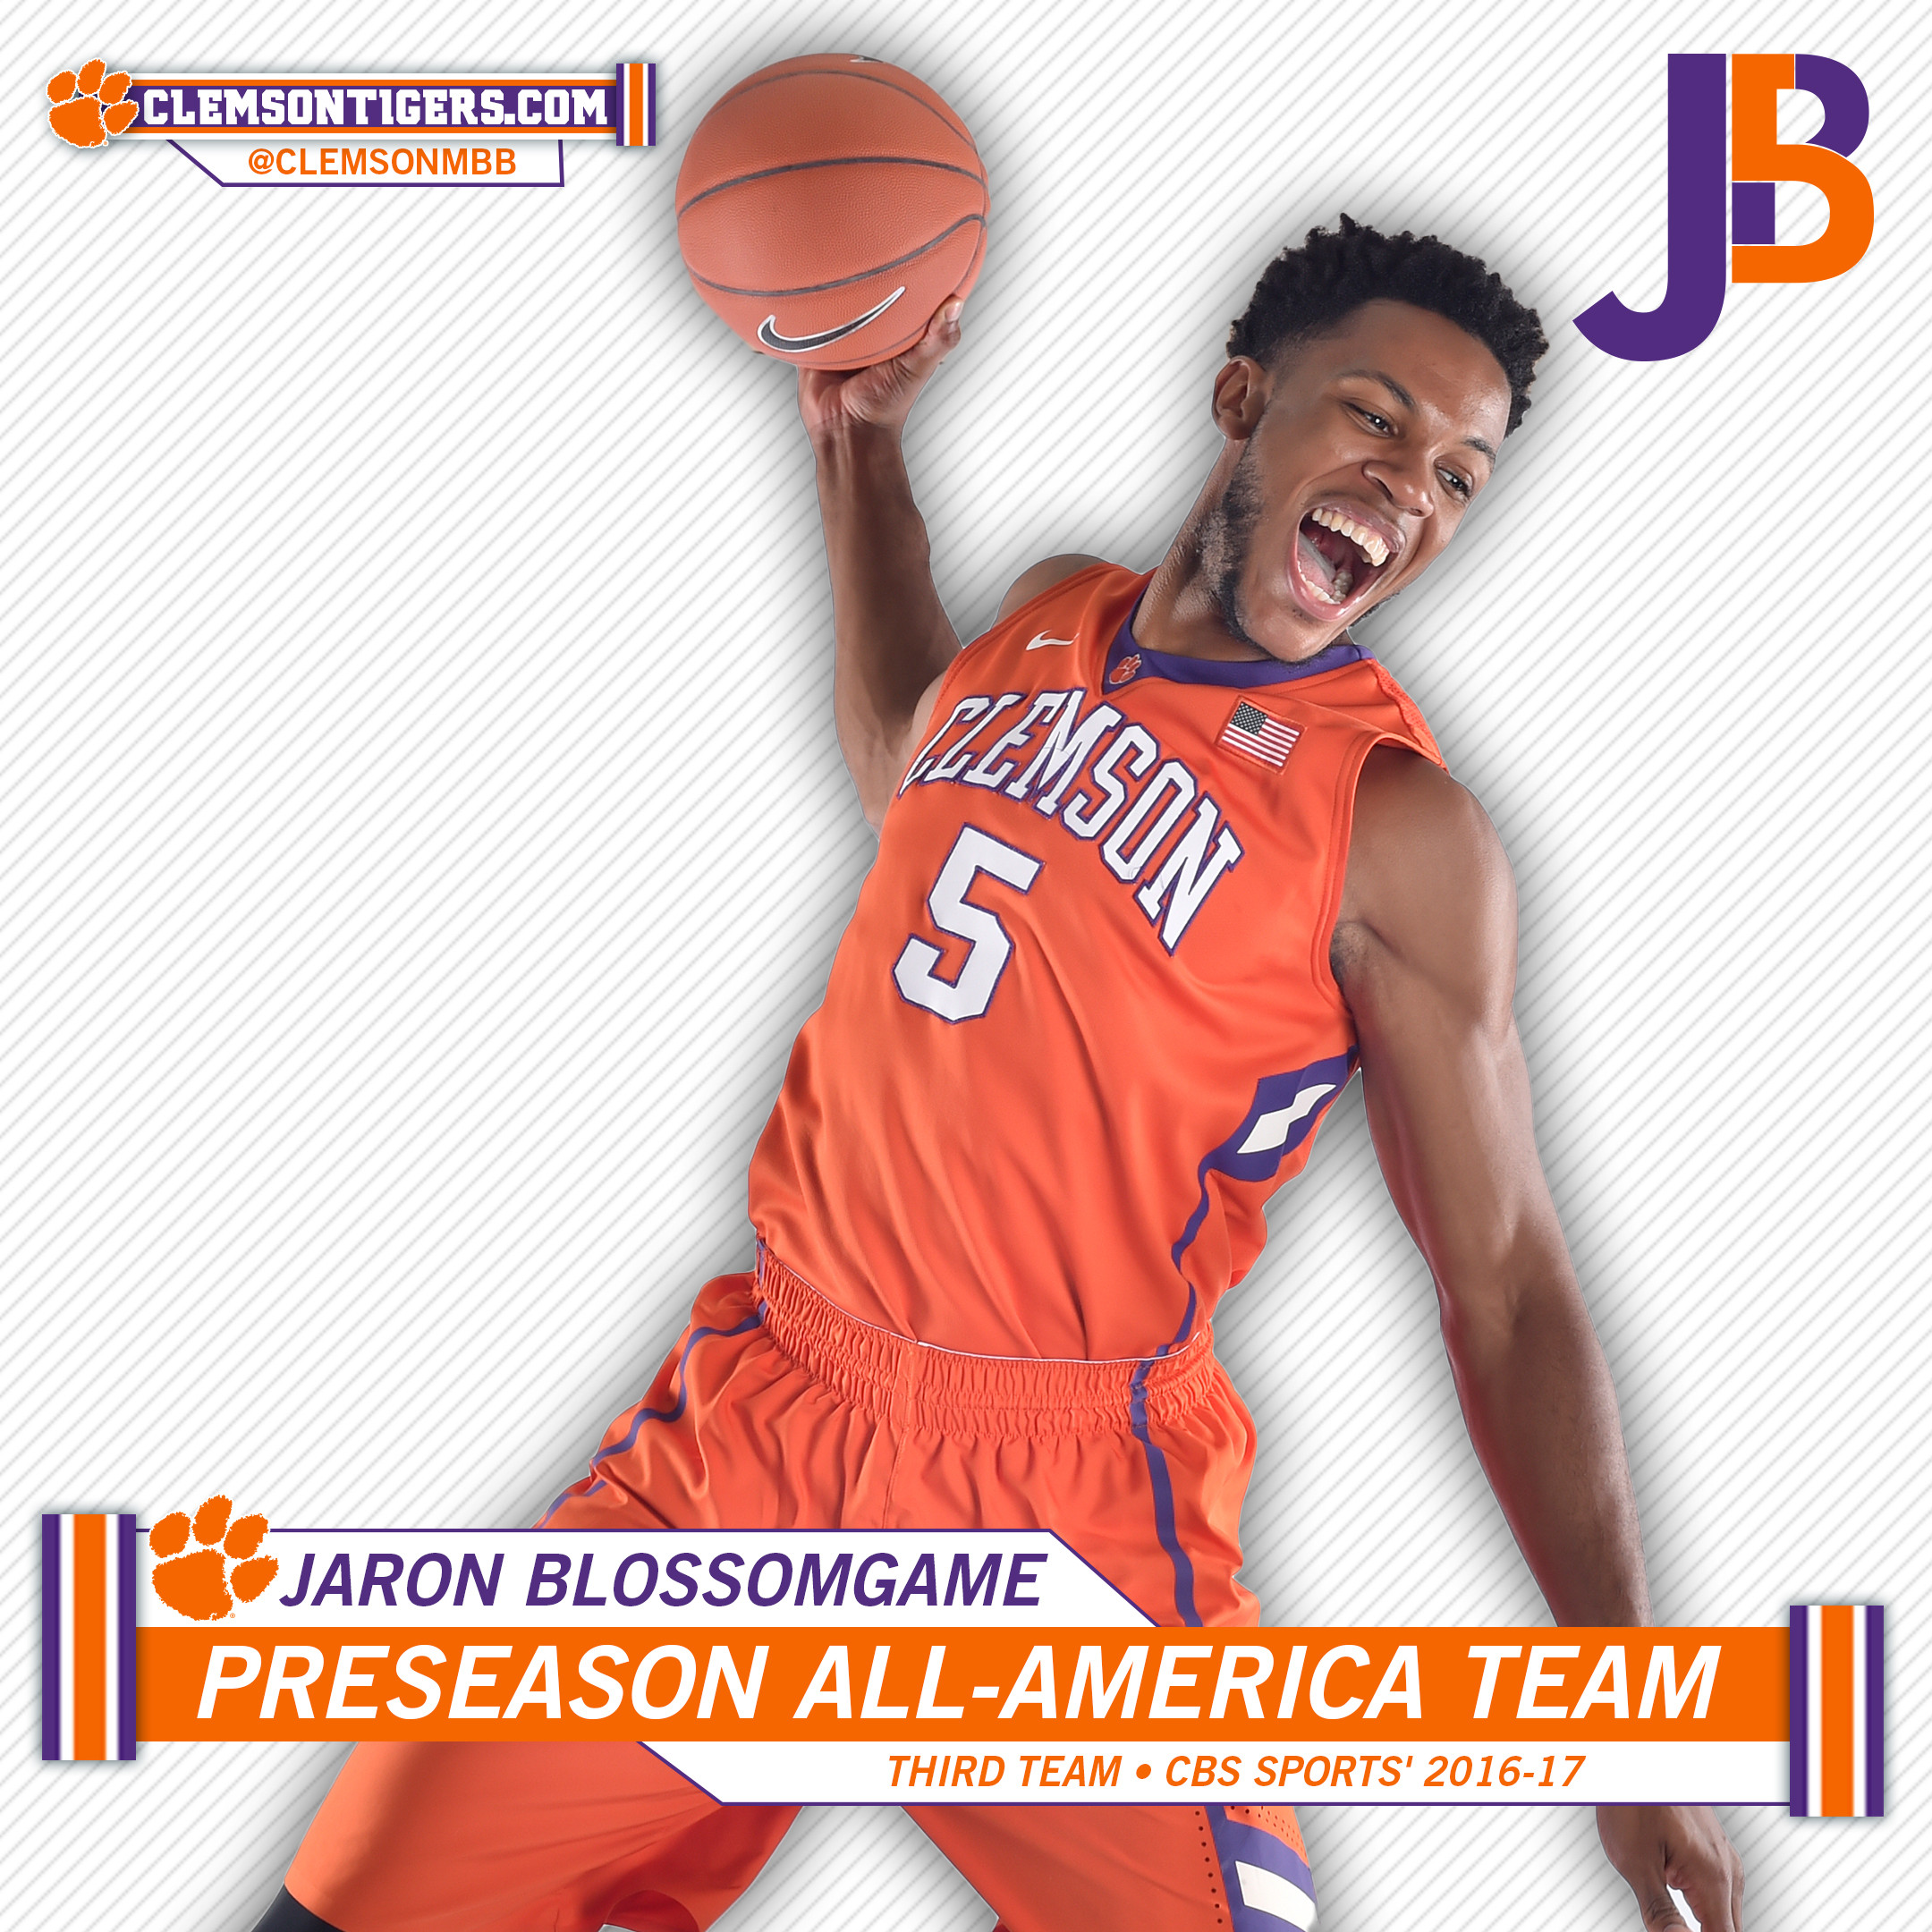 Blossomgame Lands Another Honor